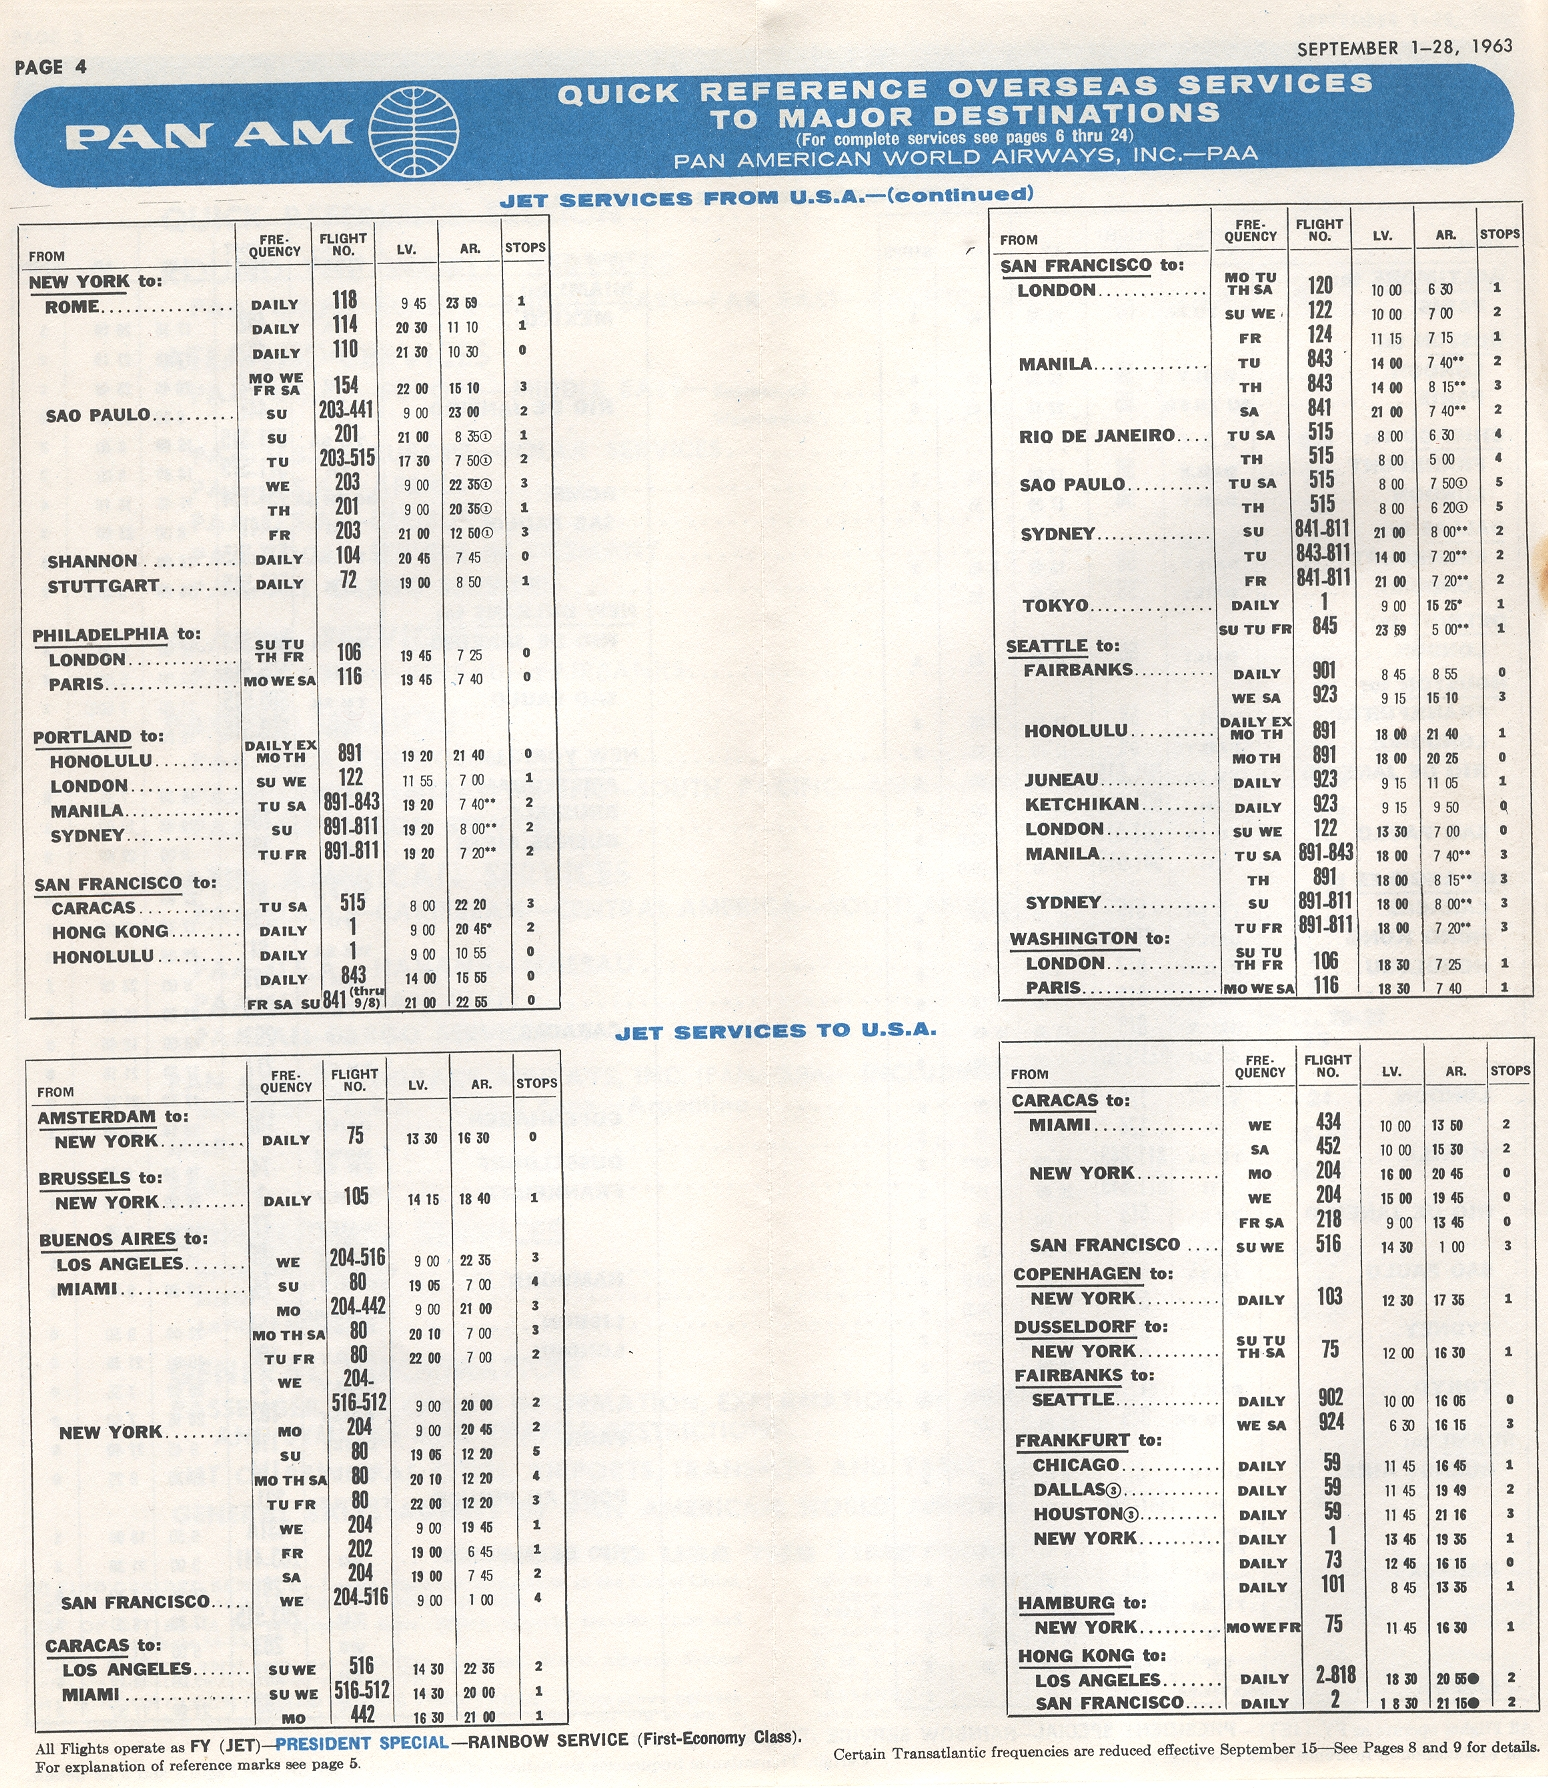 1963, September 1-30  Quick Reference Schedule page 2.